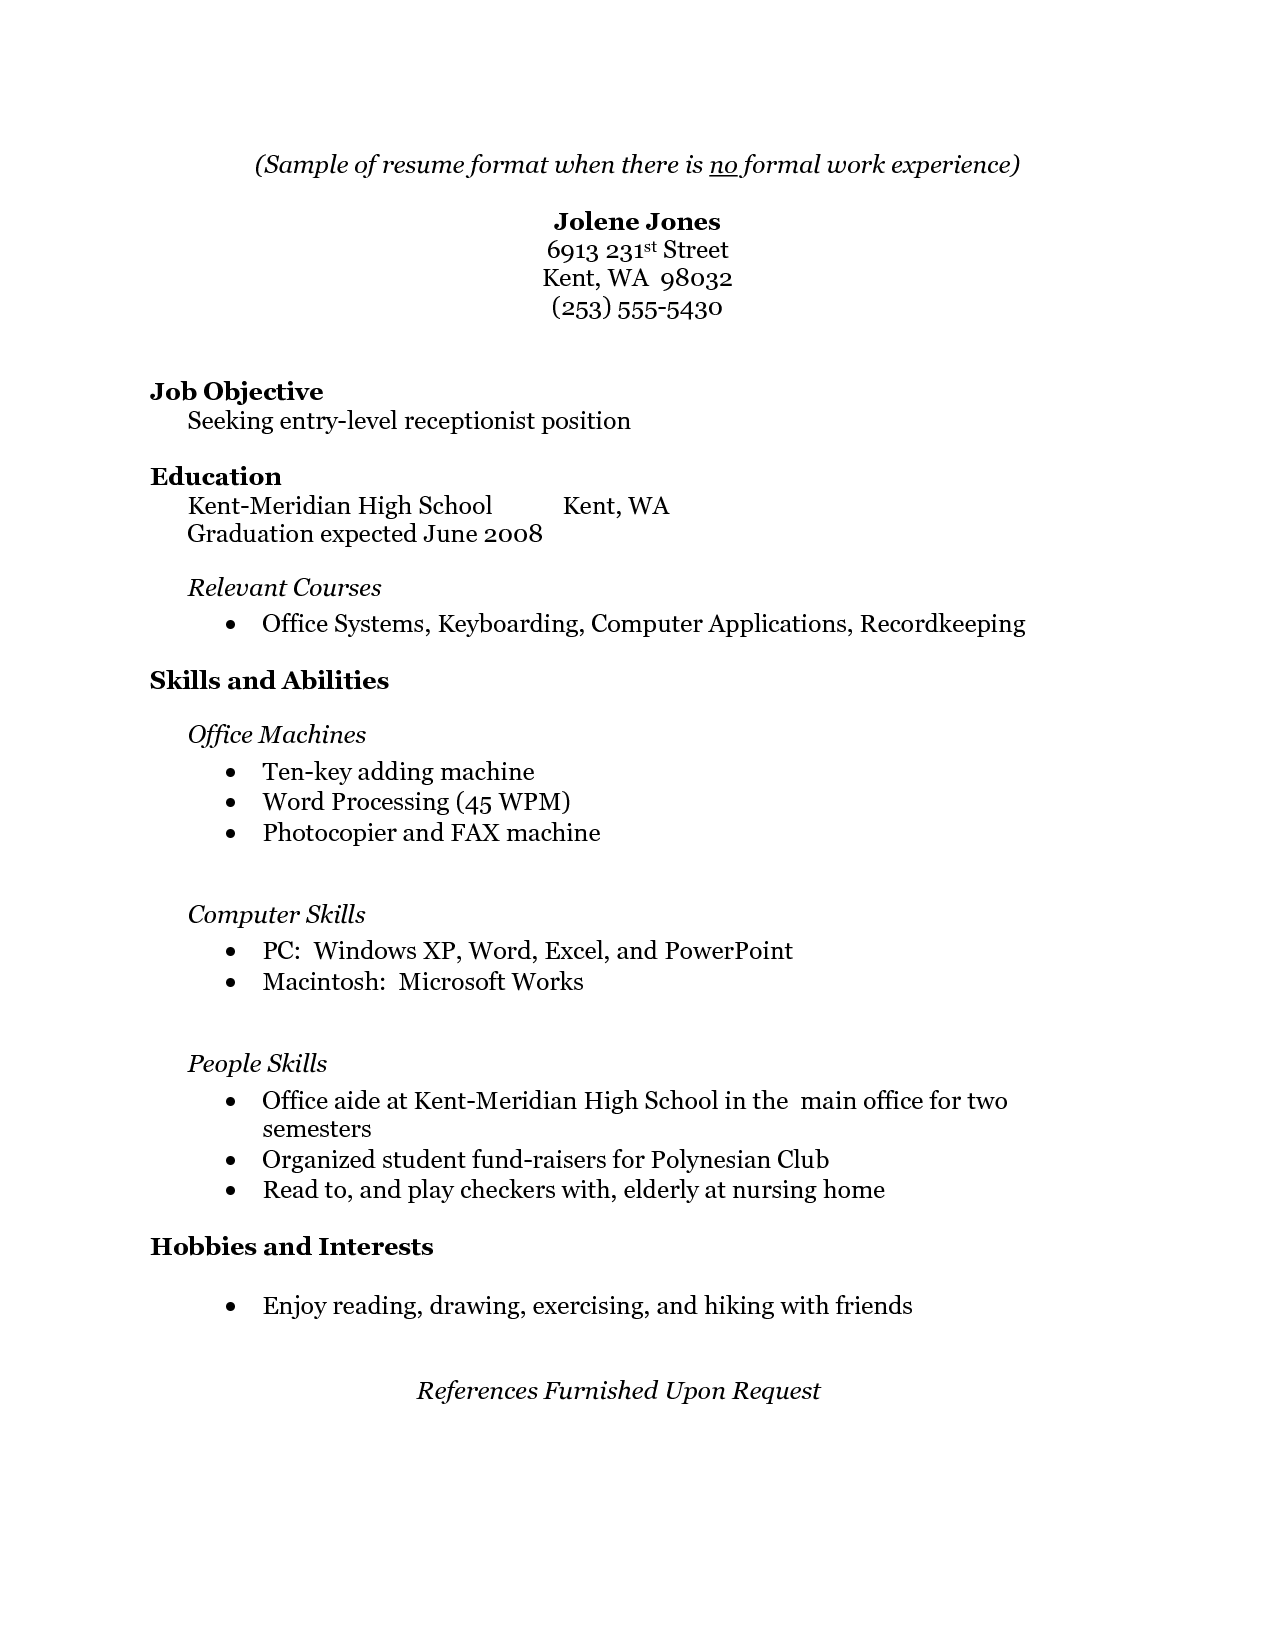 Beautiful Job Resume No Experience Examples   Http://www.resumecareer.info/job Resume  No Experience Examples 4/